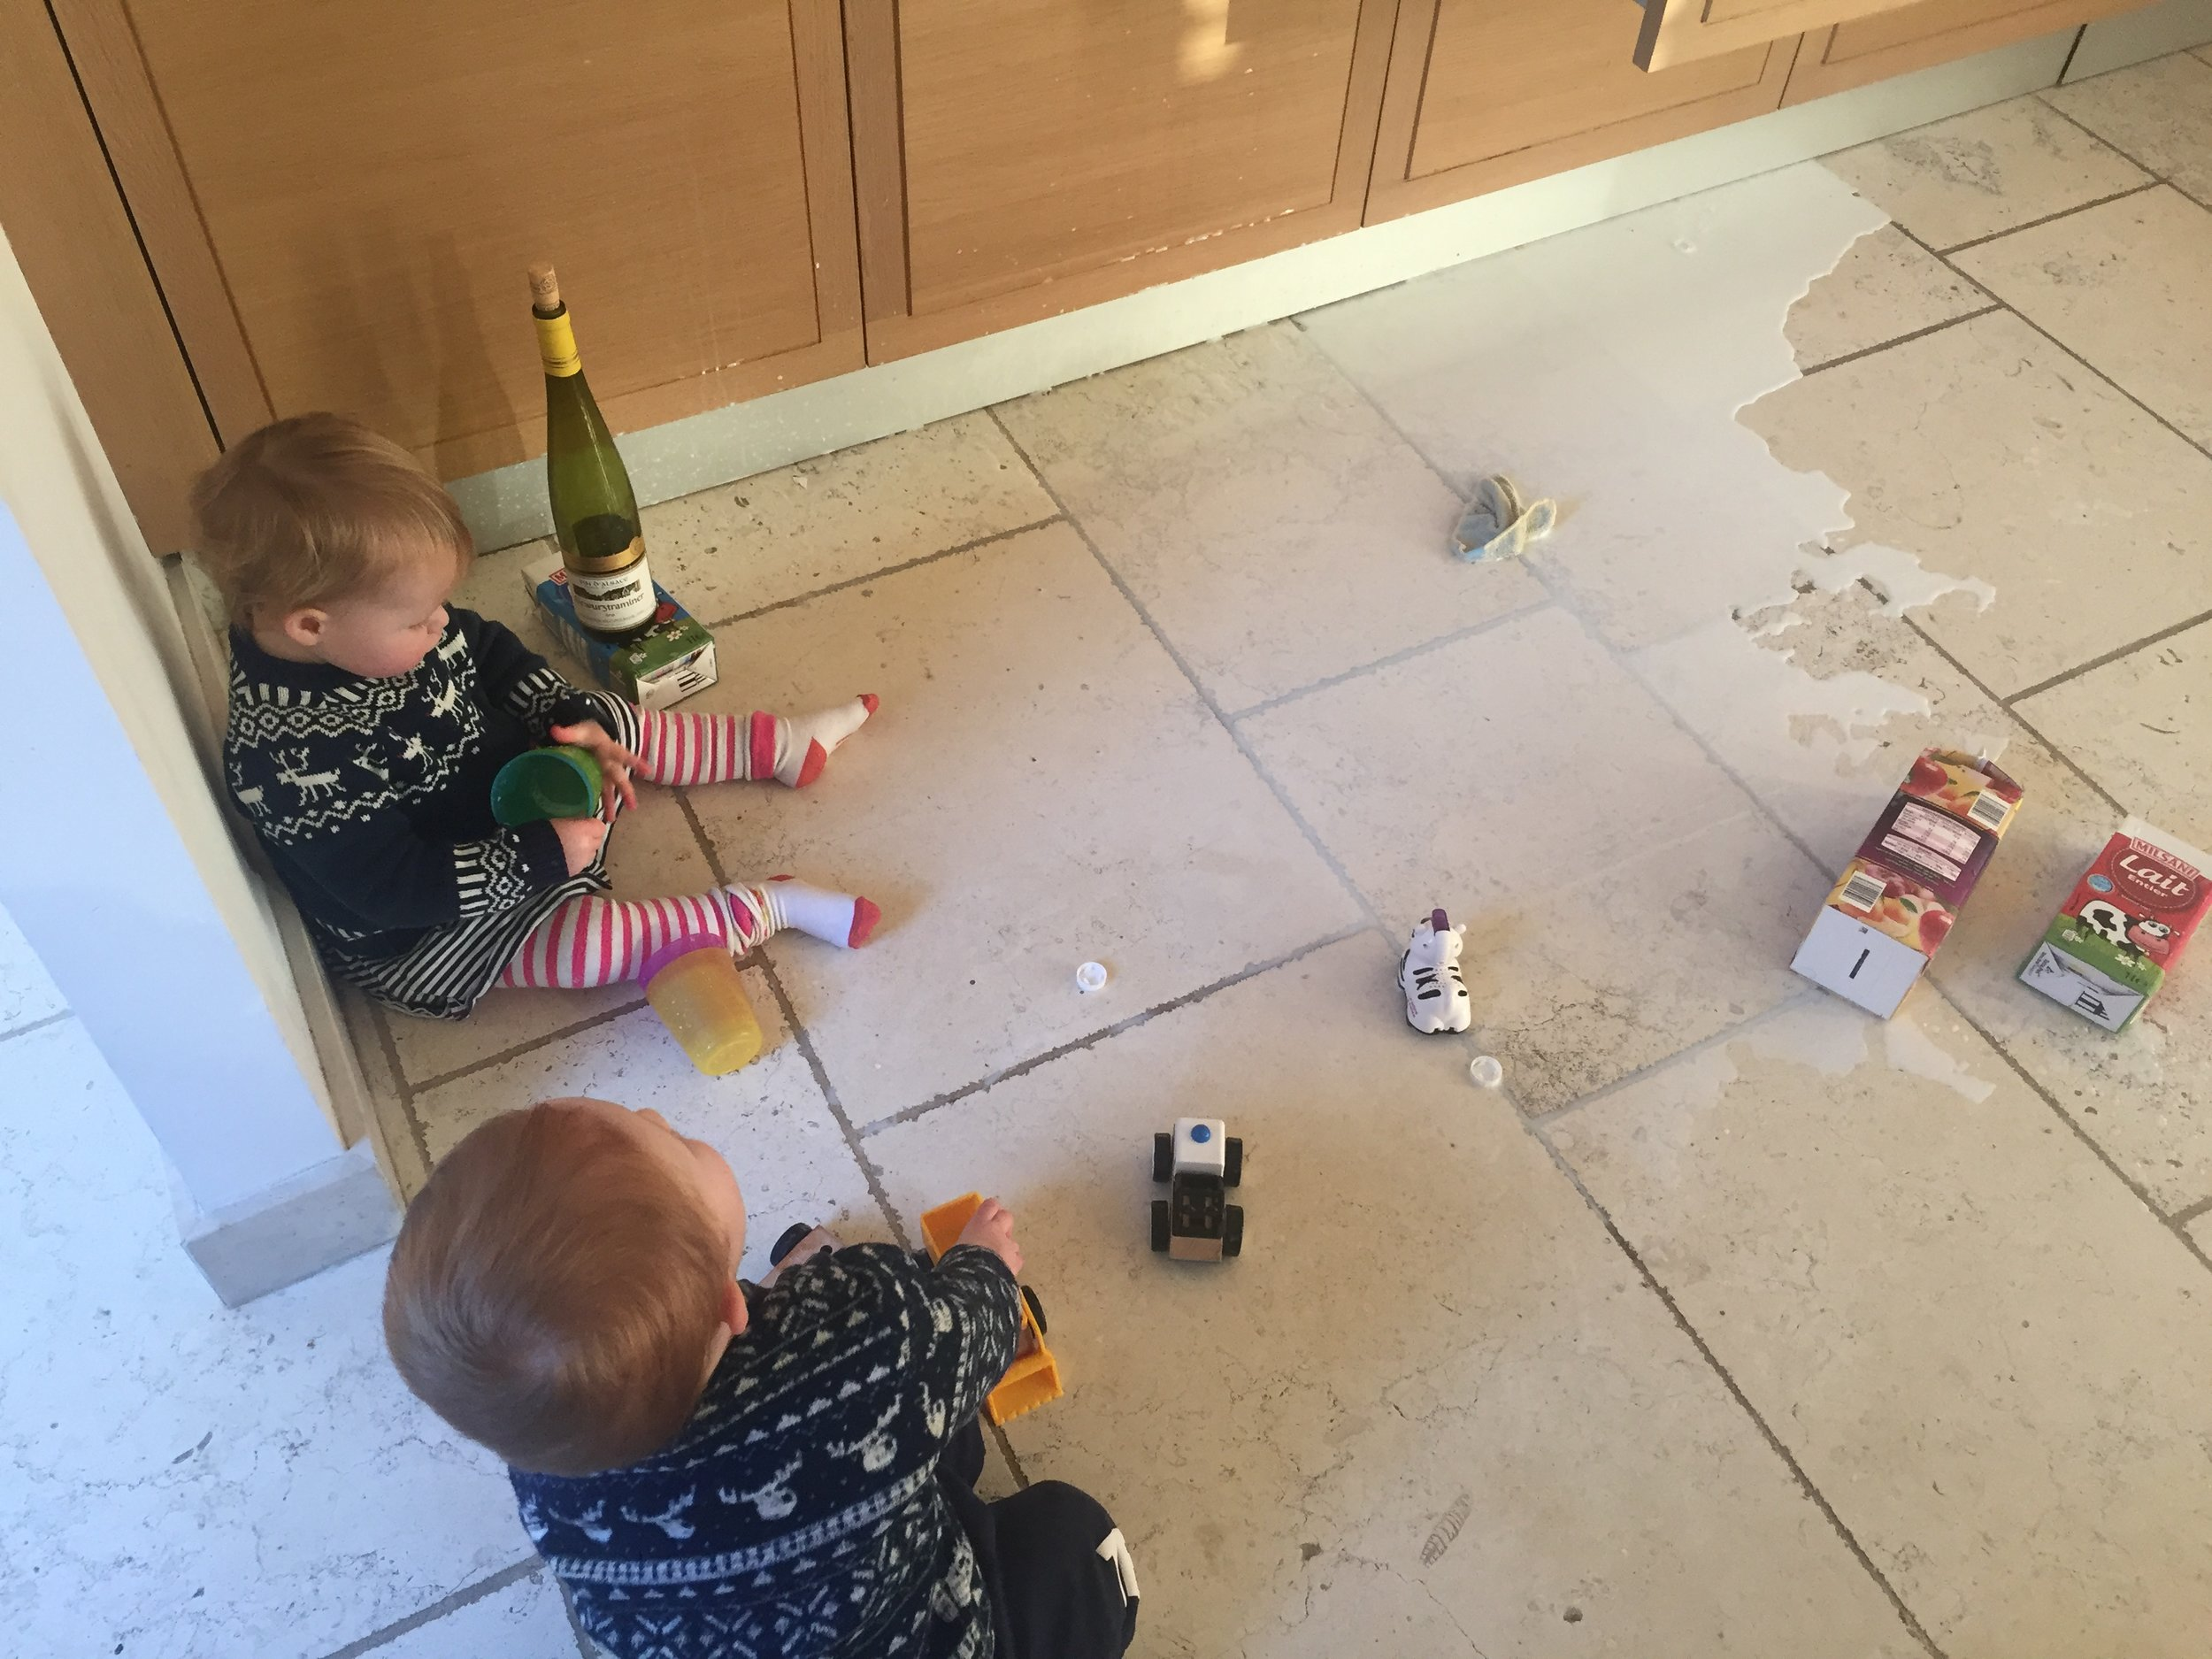 Life with toddlers..🙈 Rarely pans out as planned!